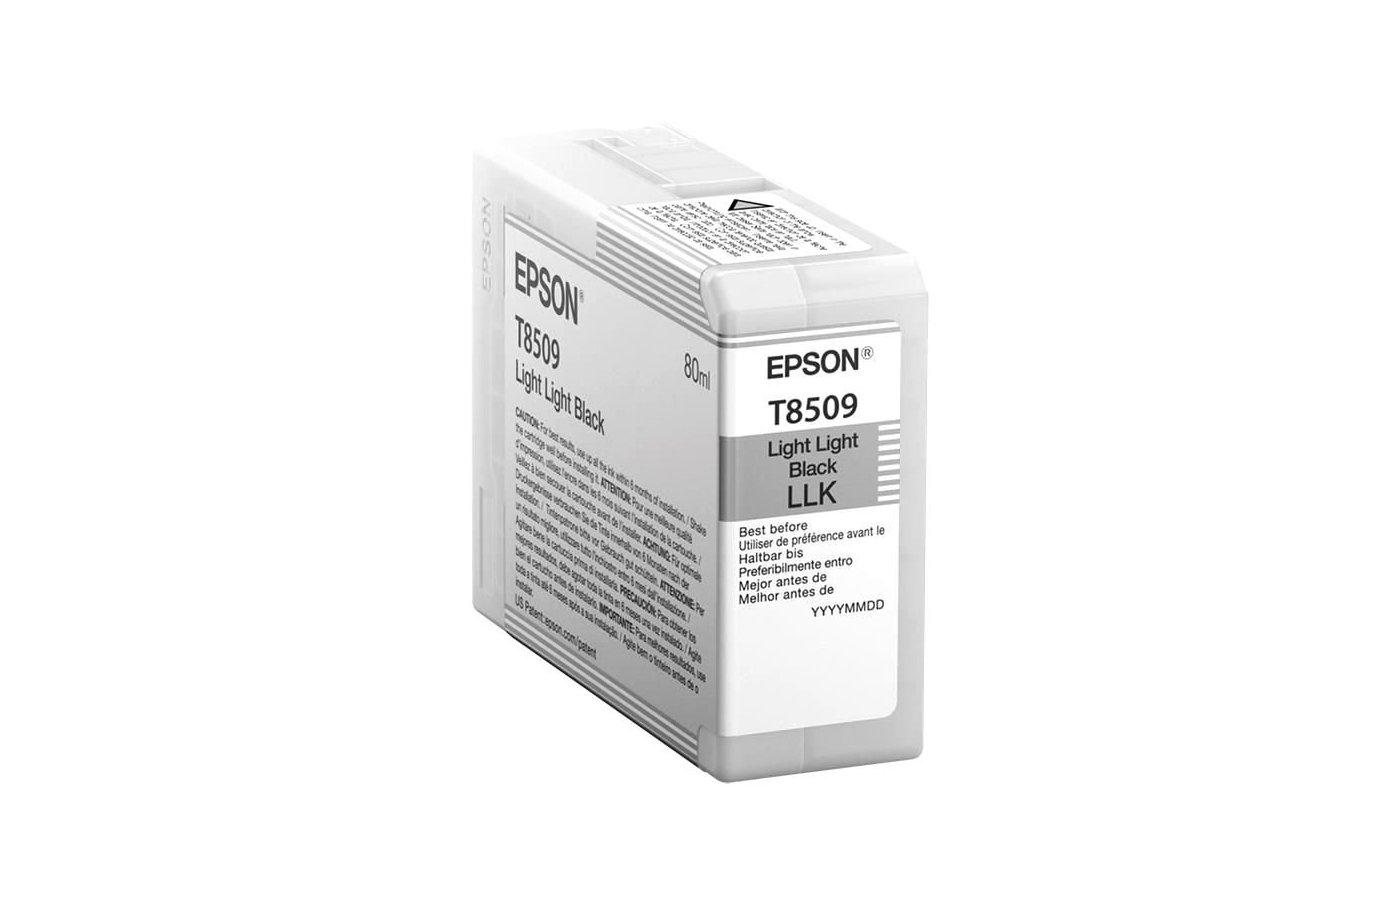 Картридж струйный Epson C13T850900 картридж Light Light Black UltraChrome HD для SC-P800 светло-серый